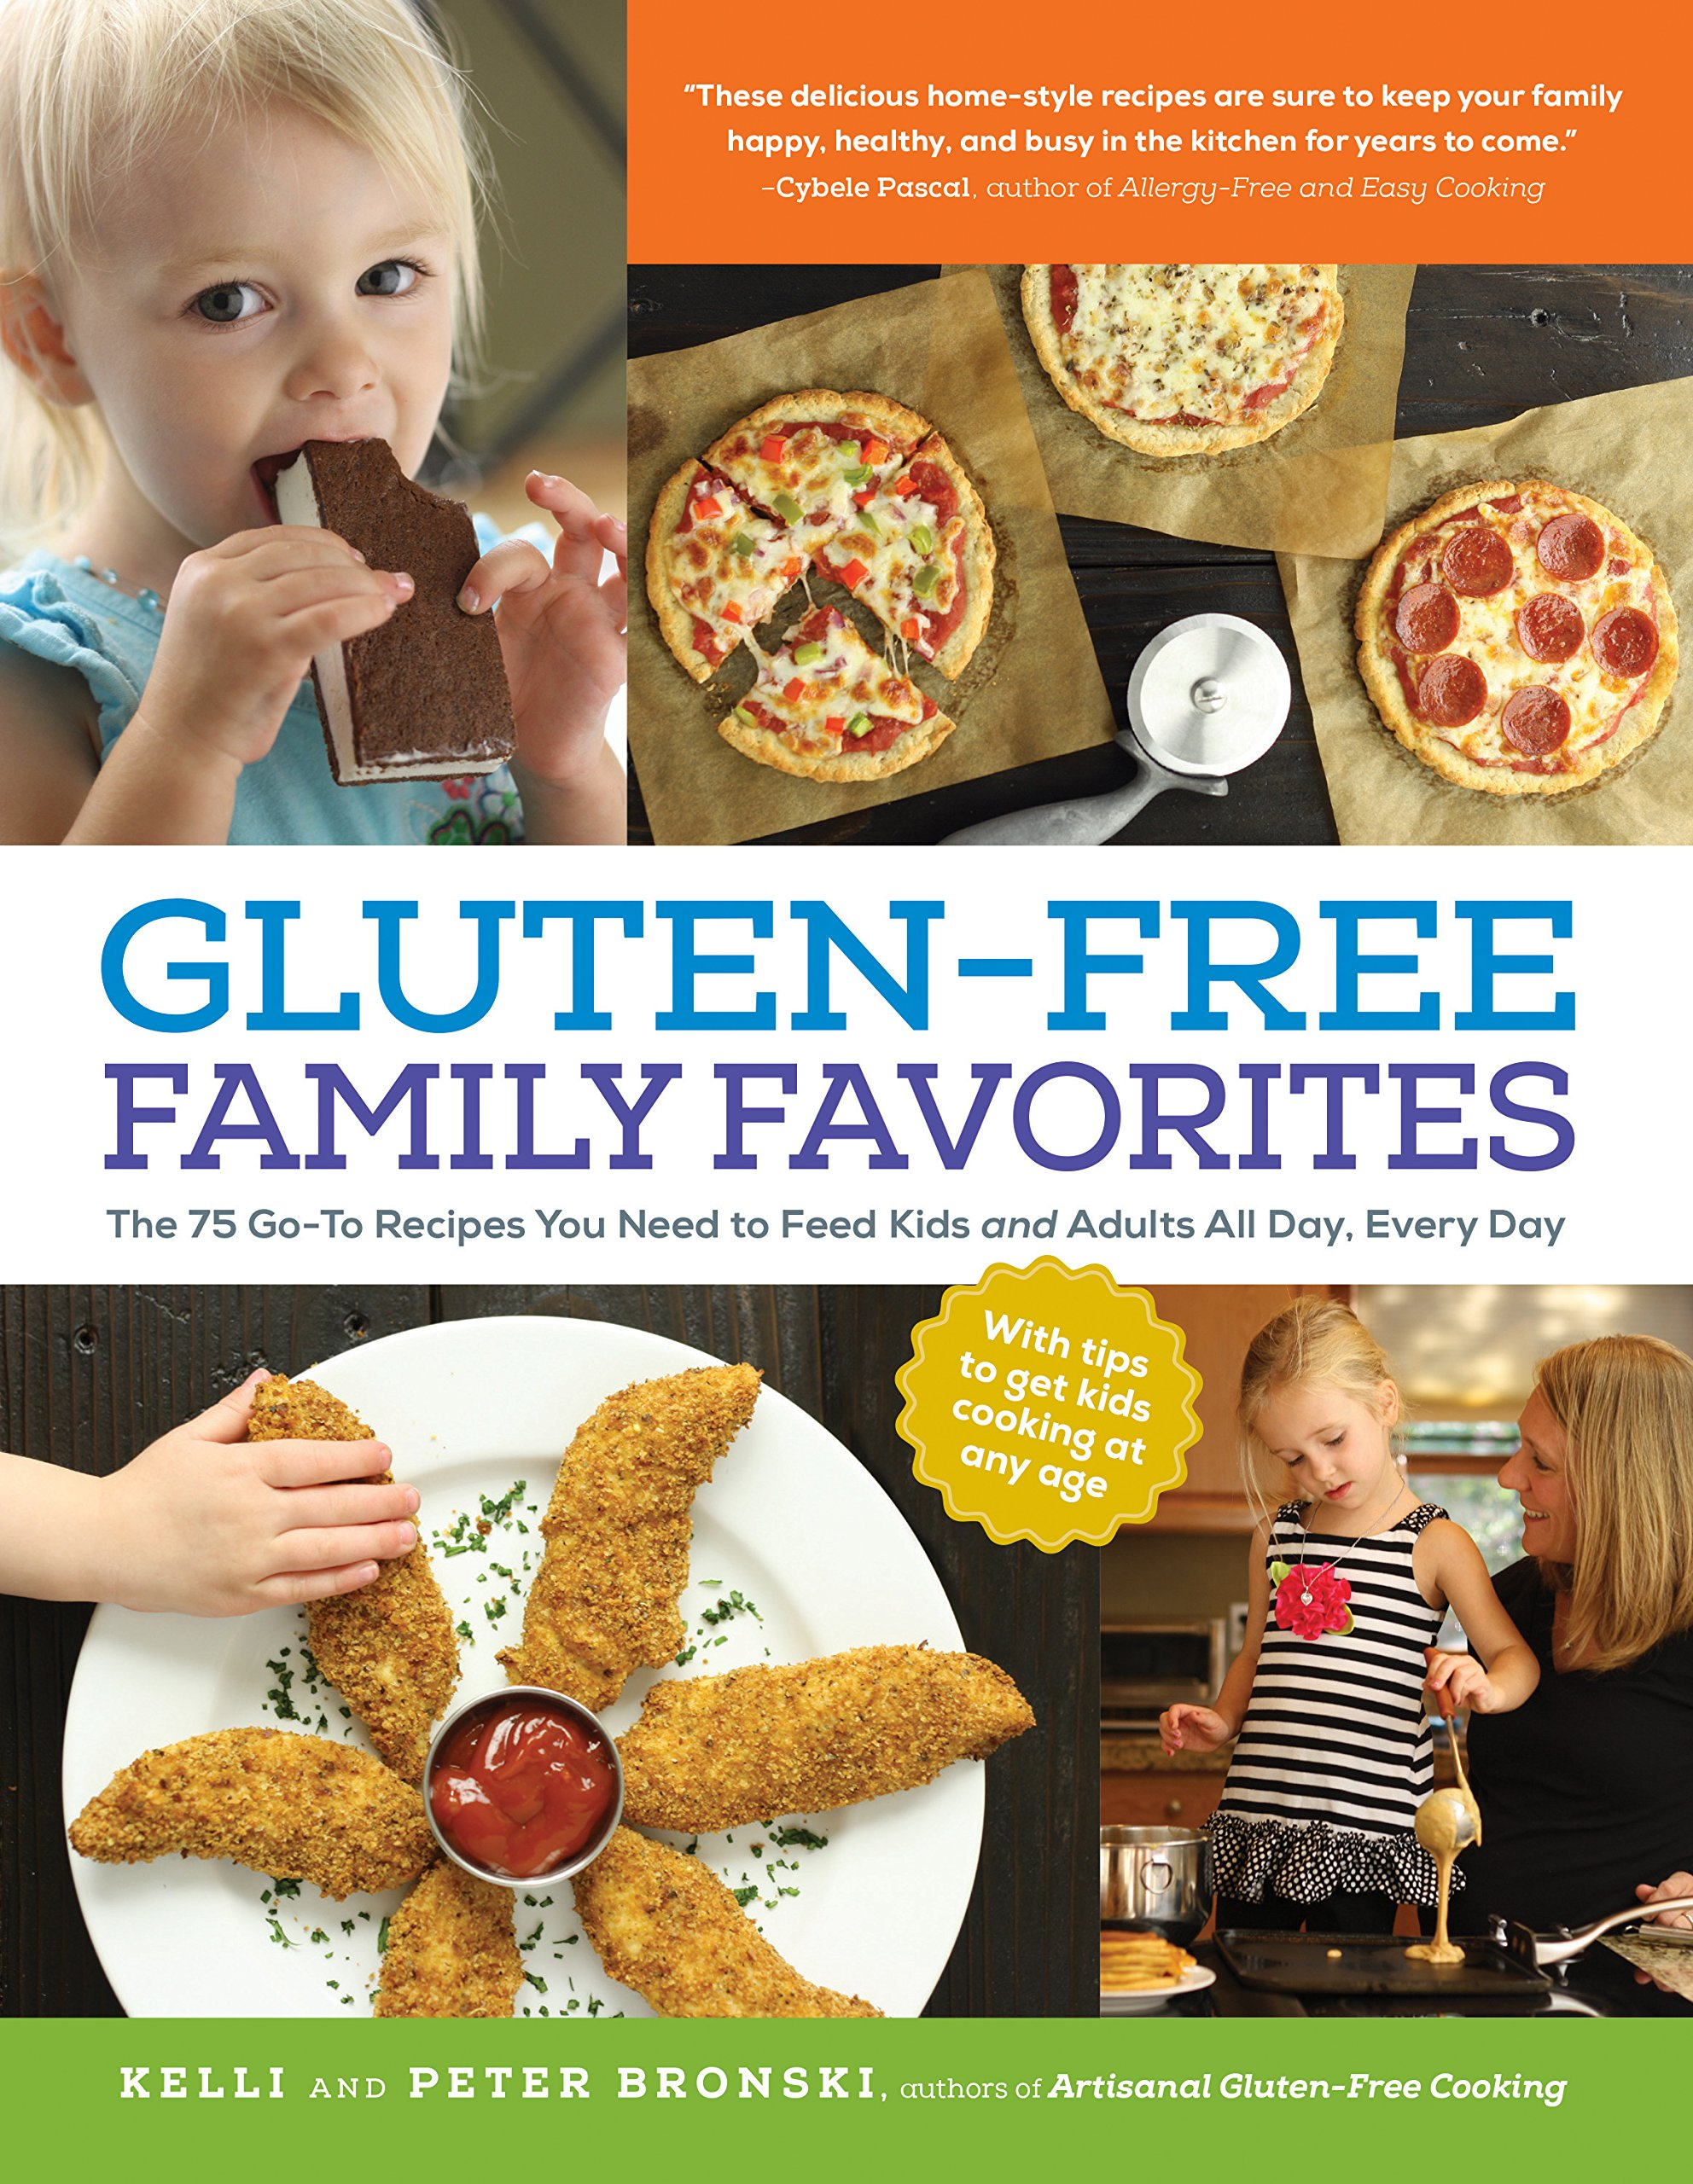 Every Day 75 Go-To Recipes to Feed Kids and Adults All Day Gluten-Free Family Favorites